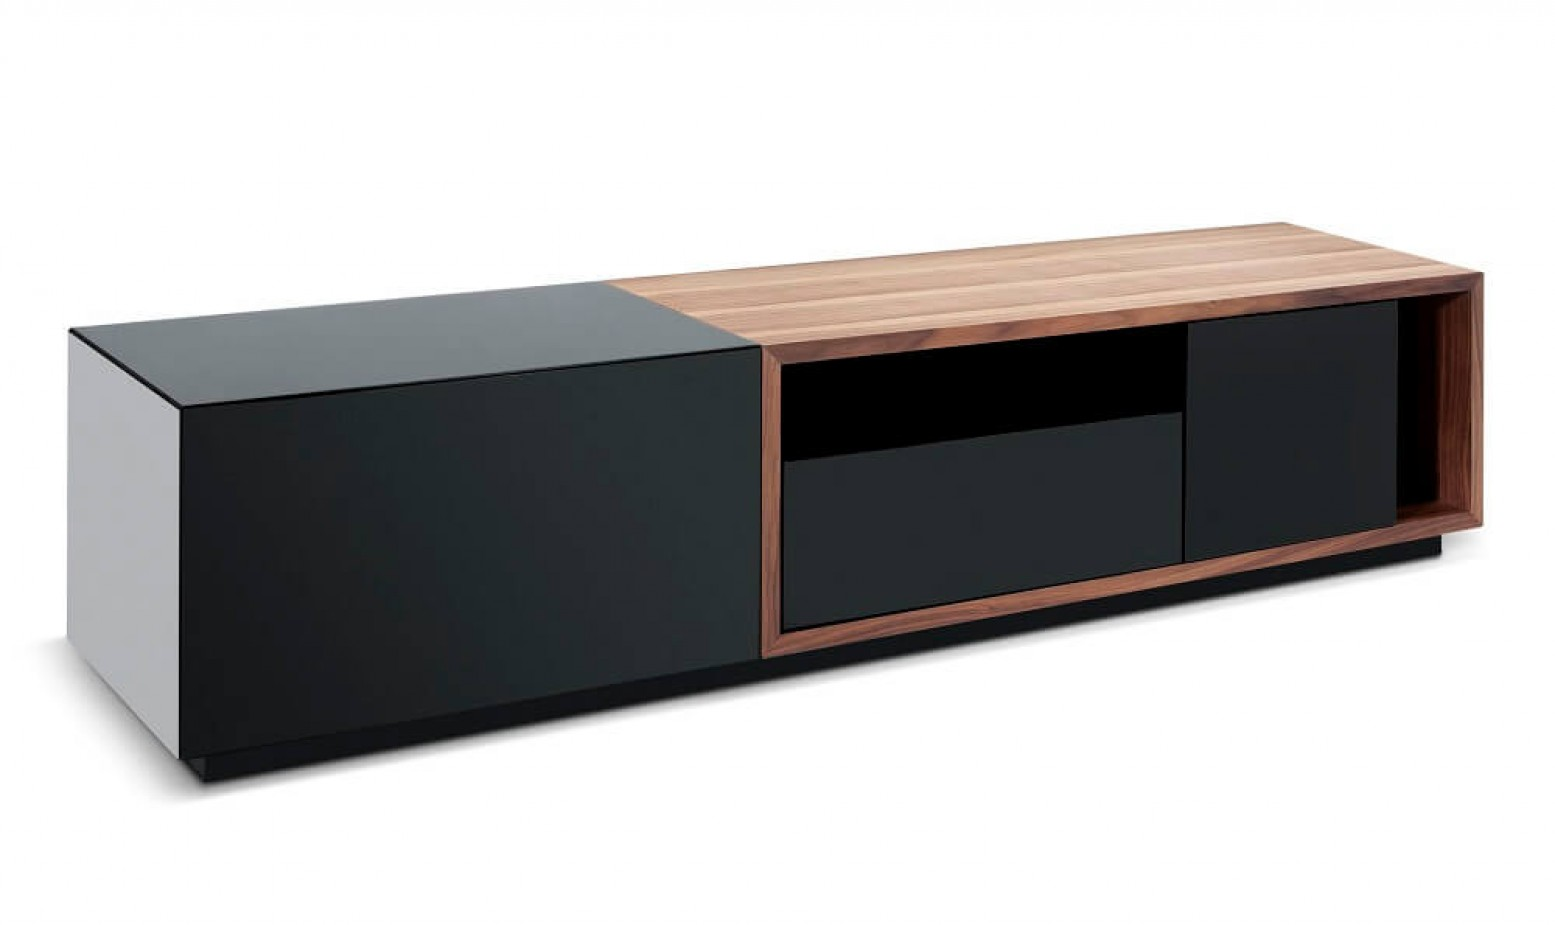 Tv047 modern tv stand for tvs up to 74 black high gloss - Walnut and black gloss living room furniture ...